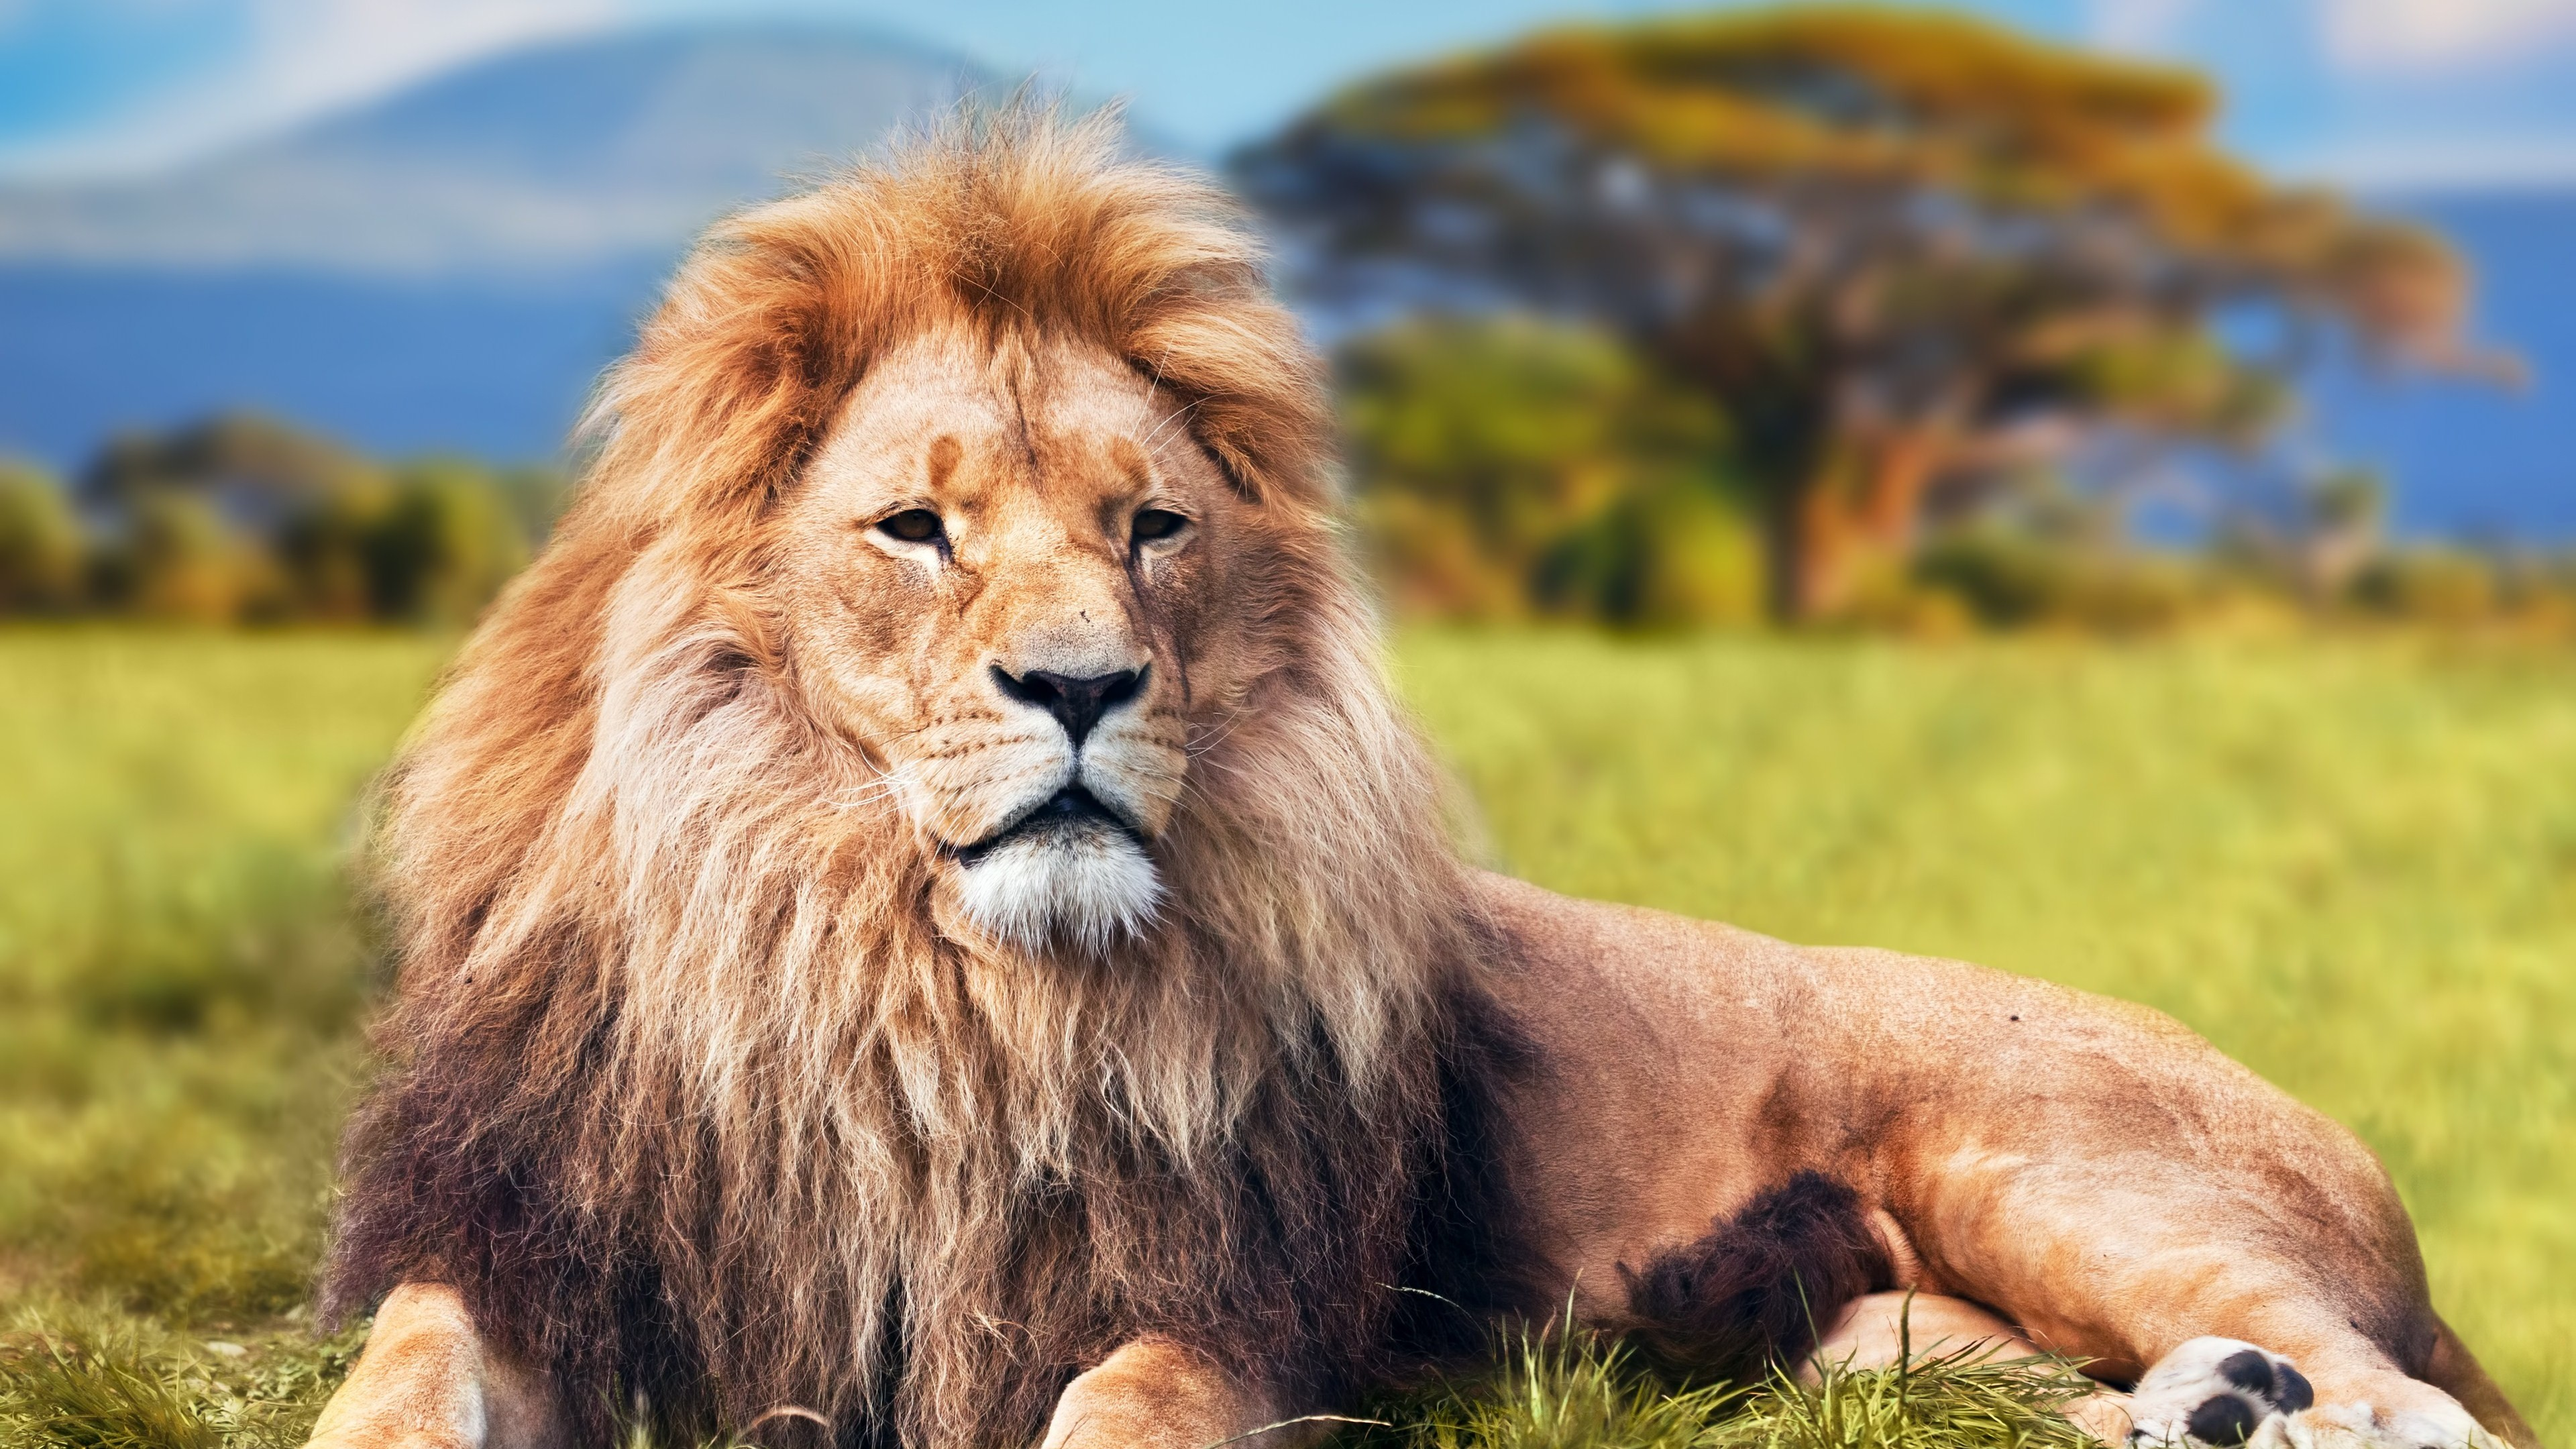 Lion 4k, HD Animals, 4k Wallpapers, Images, Backgrounds ...